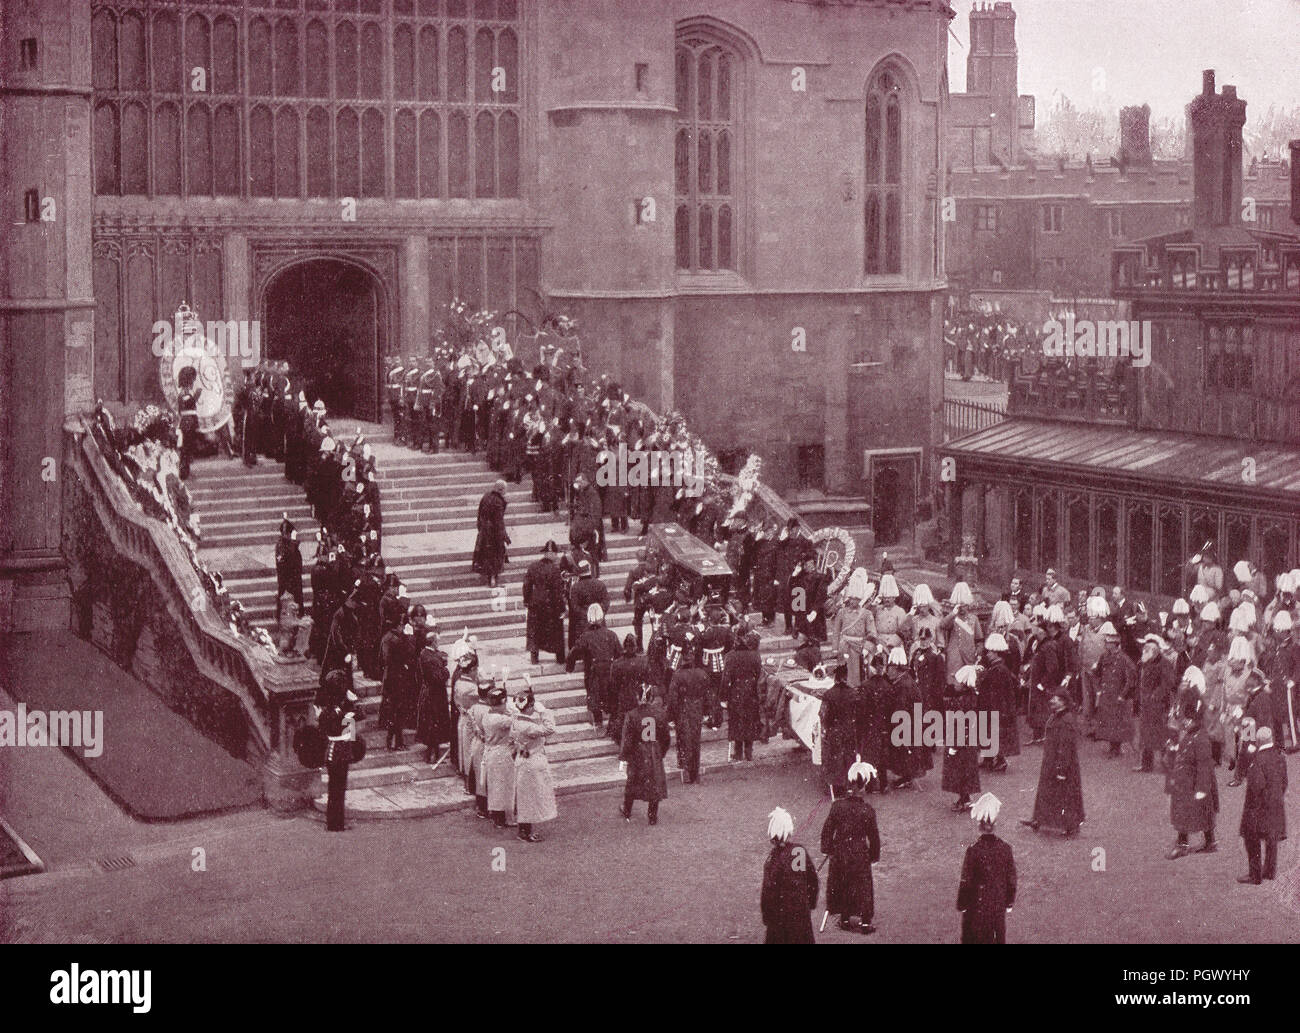 Funeral of Queen Victoria, 2 February 1901, carrying in of the Coffin, St George's chapel, Windsor Castle, Berkshire, England - Stock Image